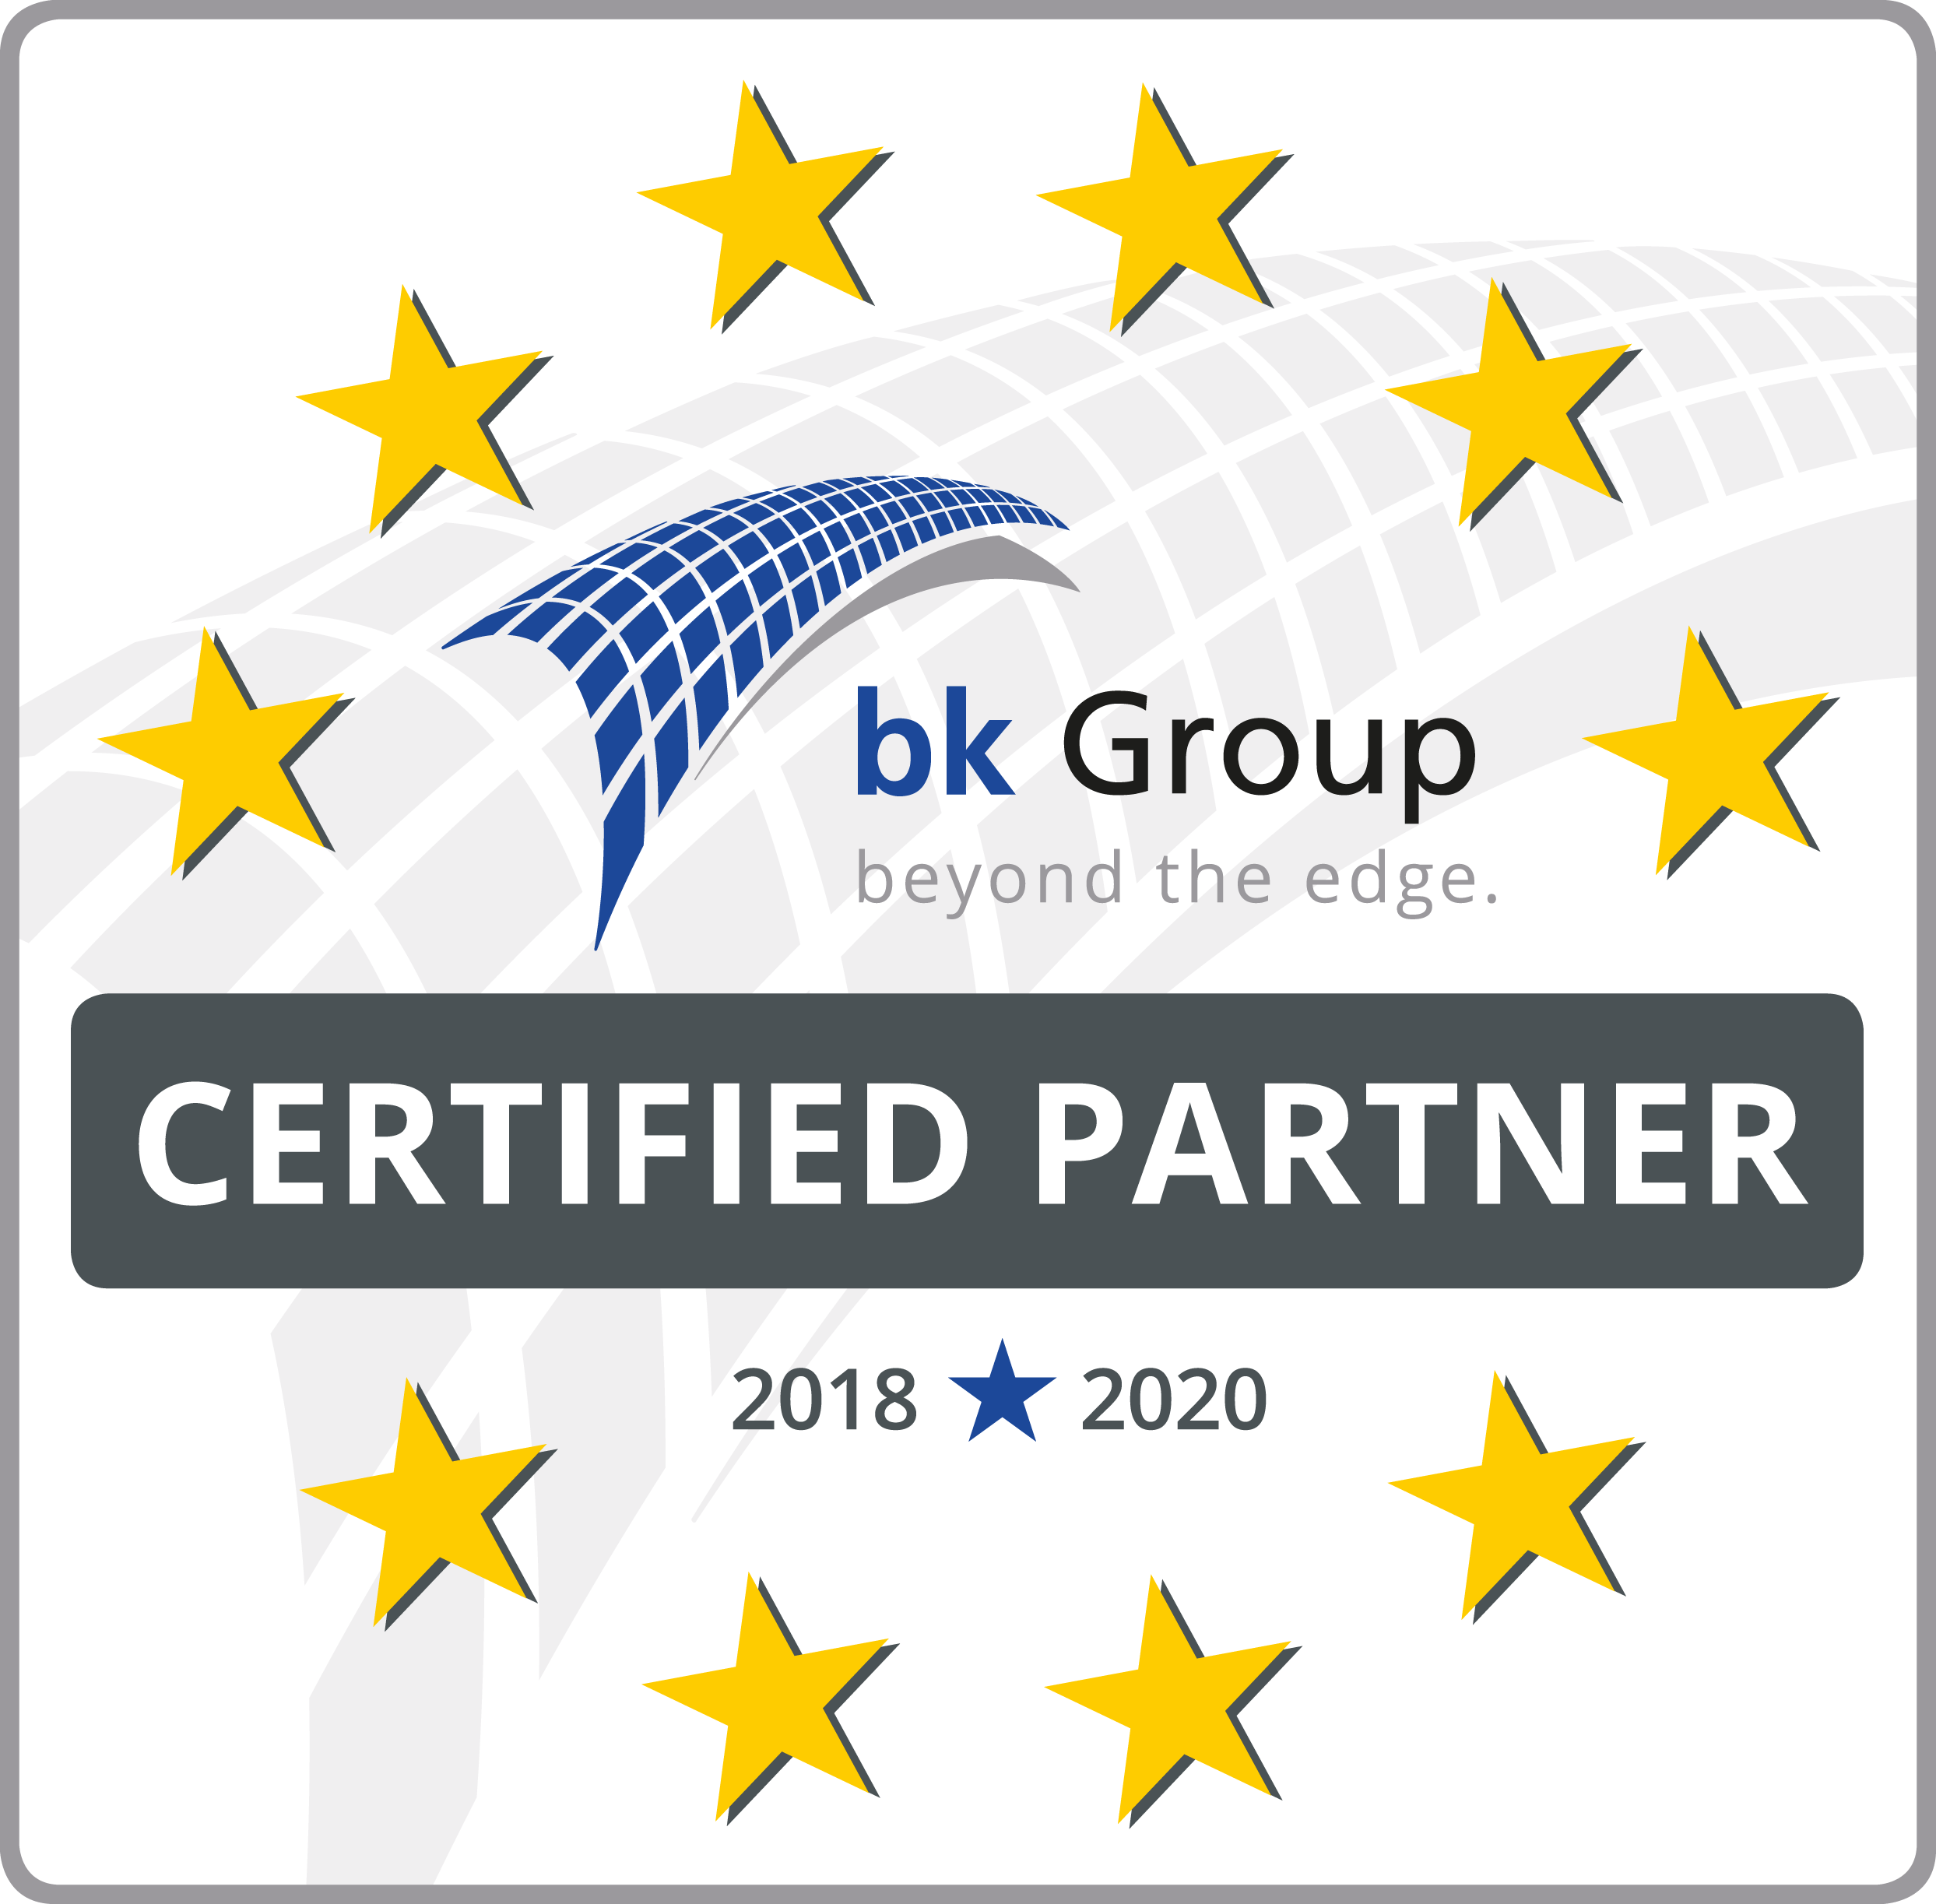 bk Group Partner